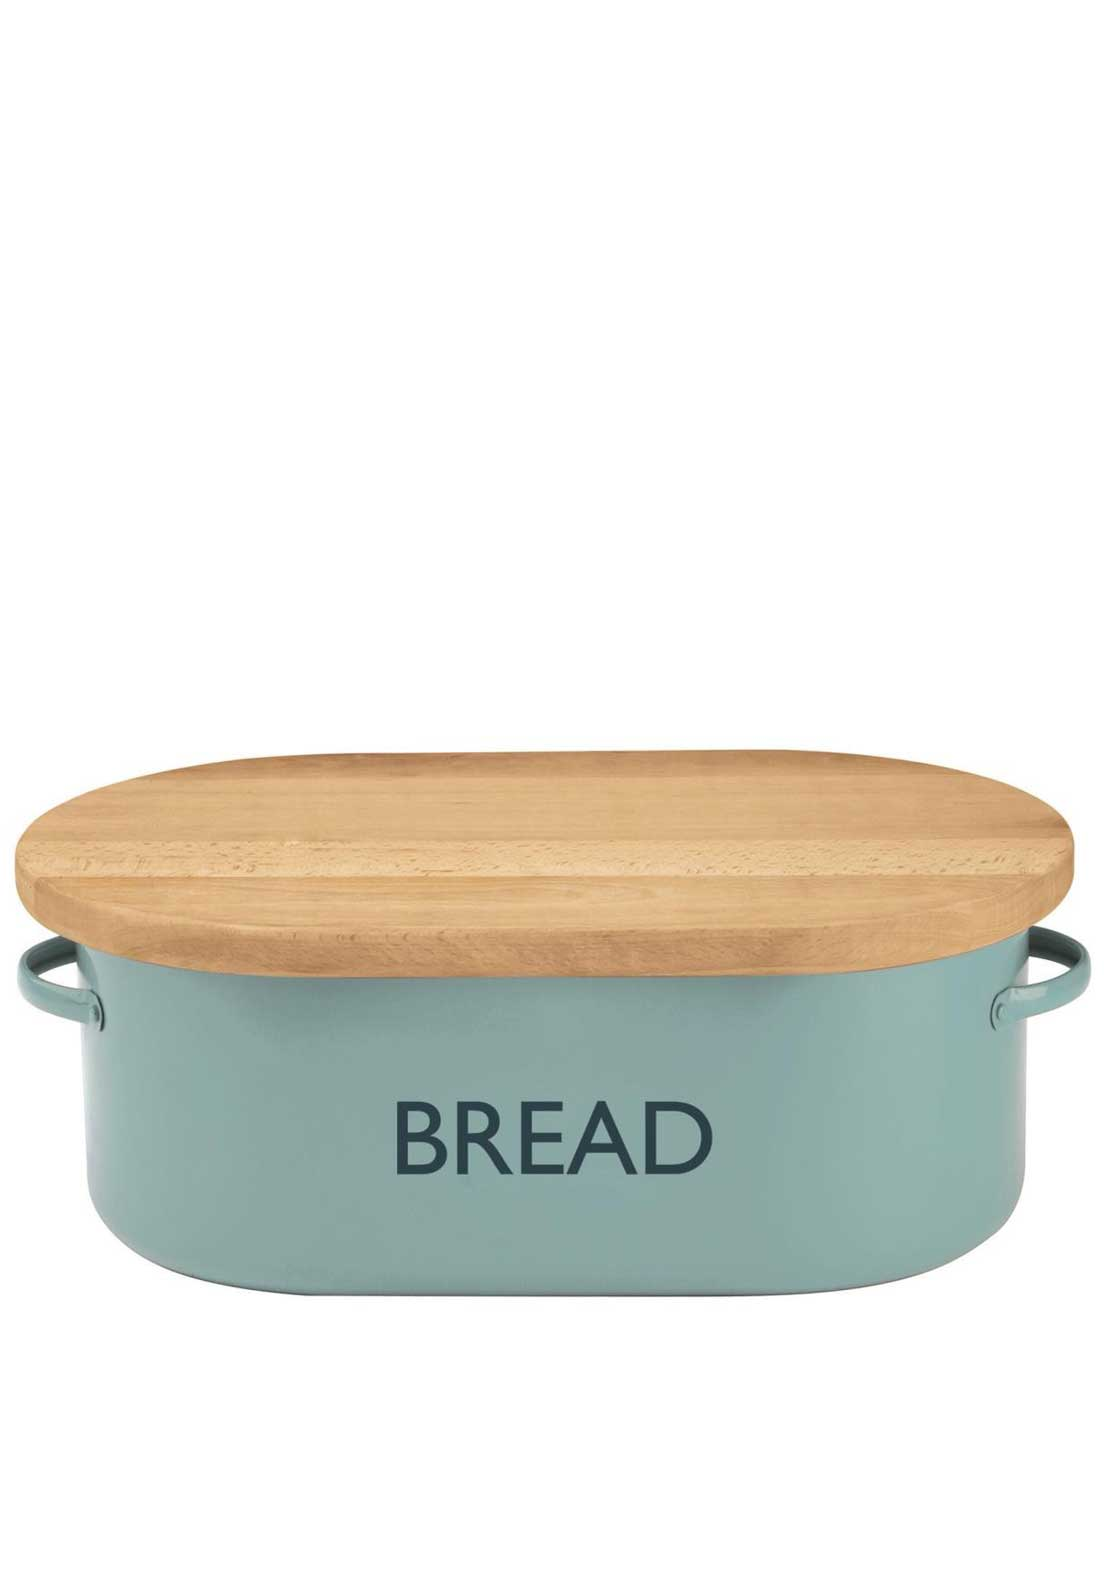 Typhoon Vintage Kitchen Bread Bin, Blue